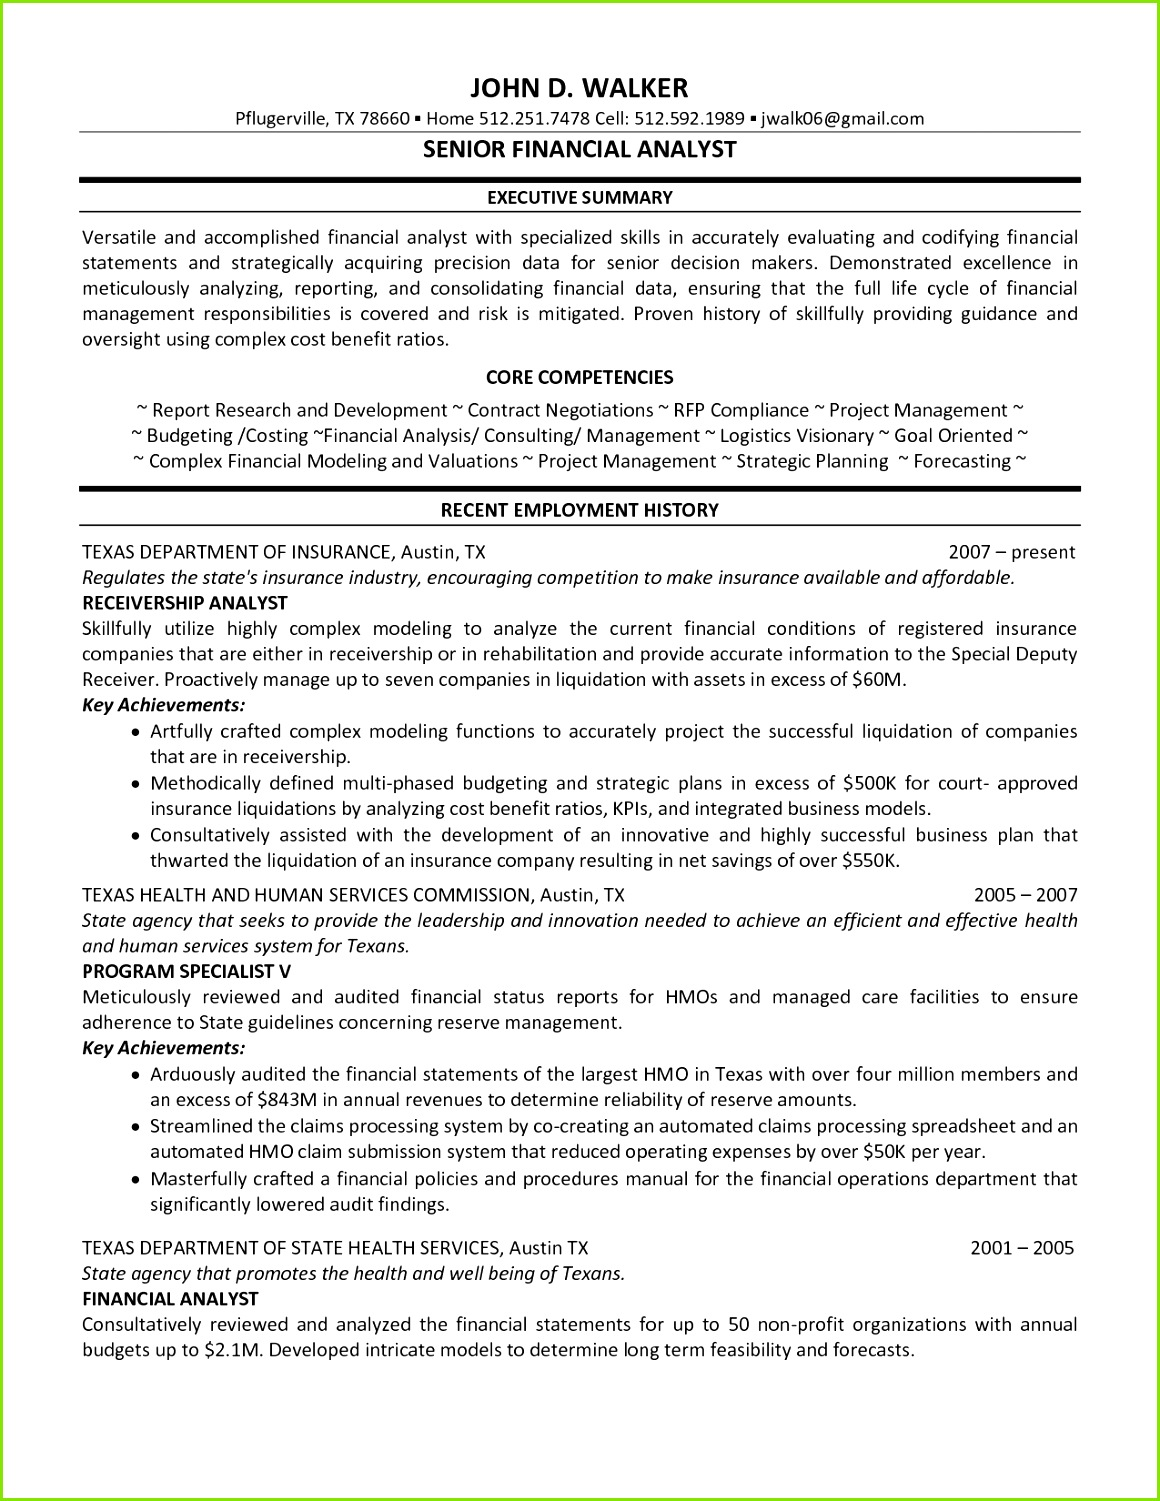 kyc analyst cover letter sarahepps